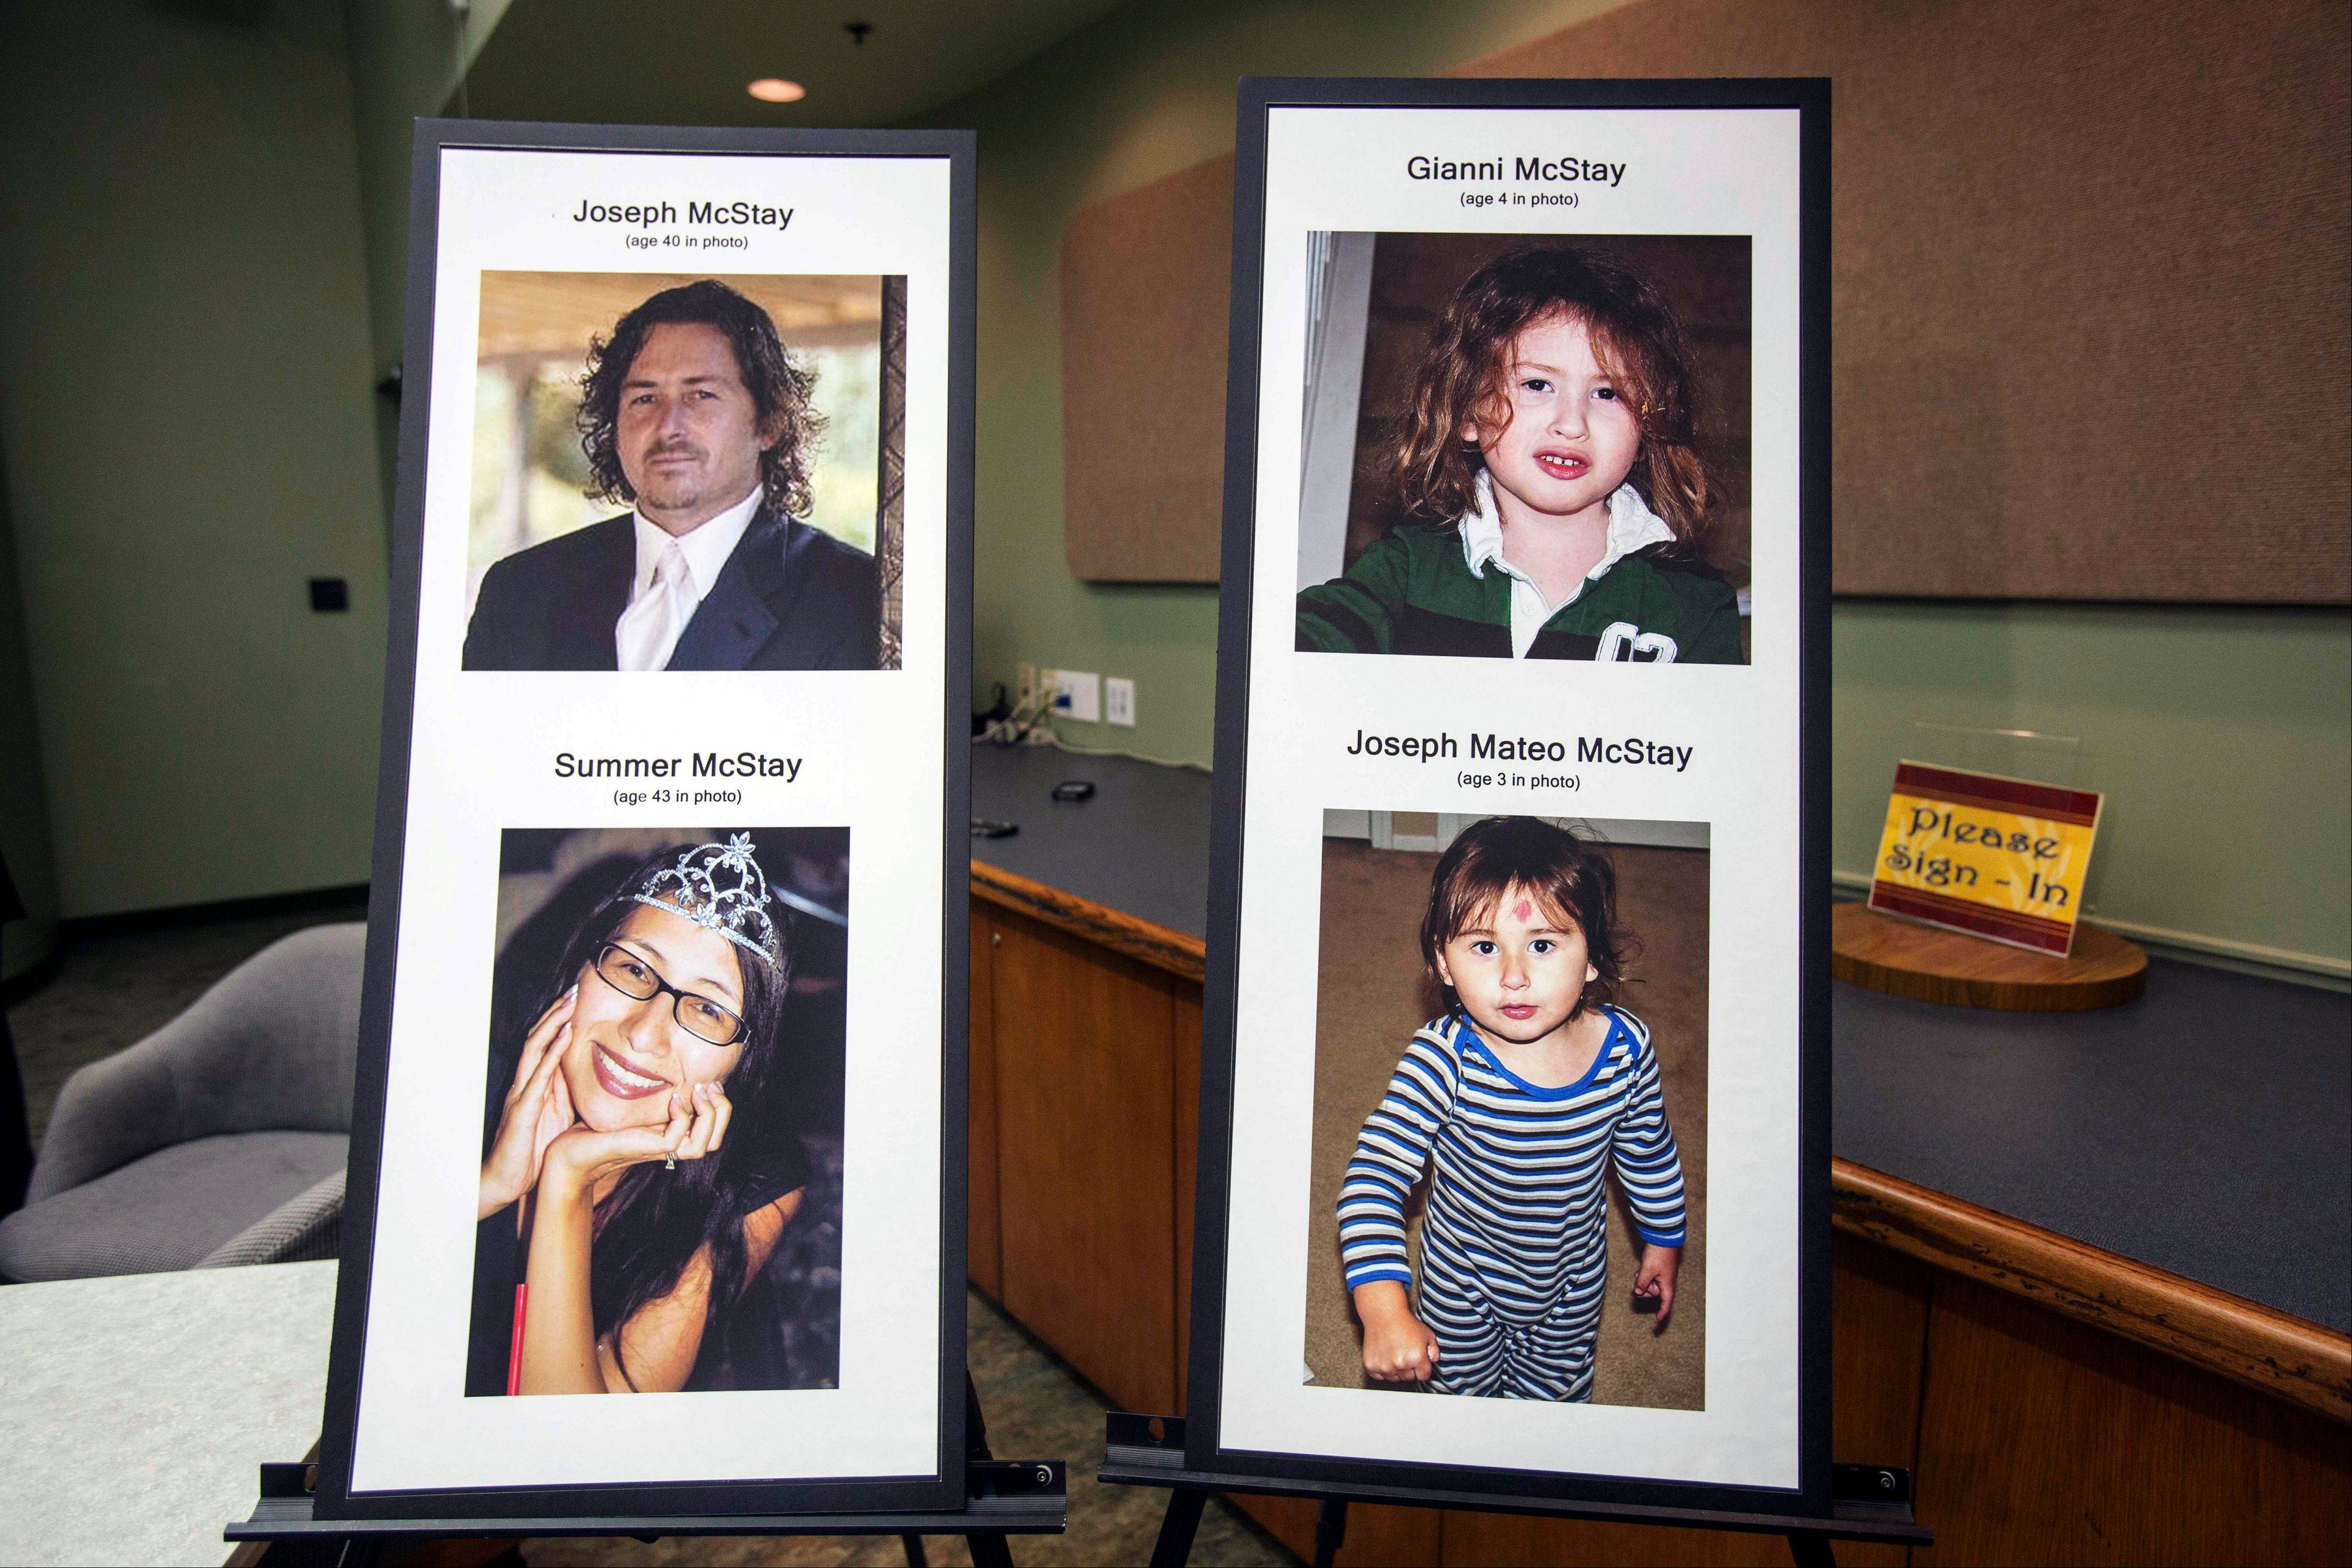 This photo display at a press conference at the San Bernardino County Sheriff�s Department headquarters in San Bernadino, Calif., shows Joseph and Summer McStay, and their children Gianni and Joseph Mateo, who disappeared in 2010 from their San Diego home.